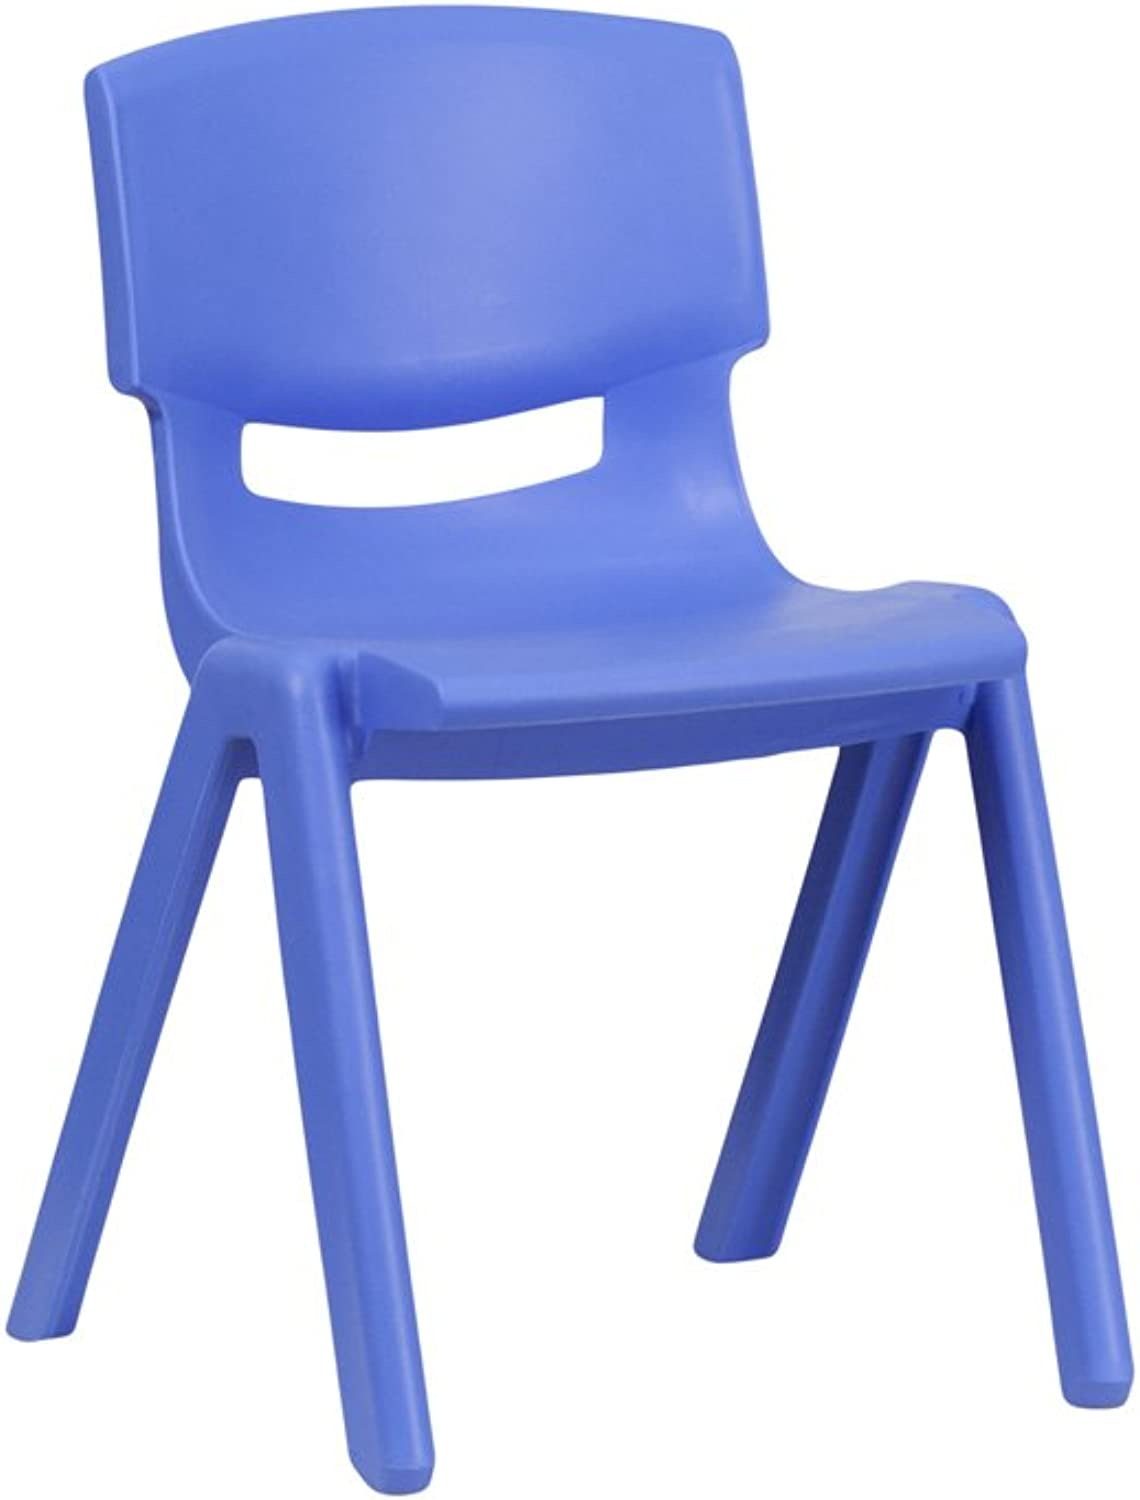 Sammy bluee Plastic Stackable School Chair 13.25'' Seat Height